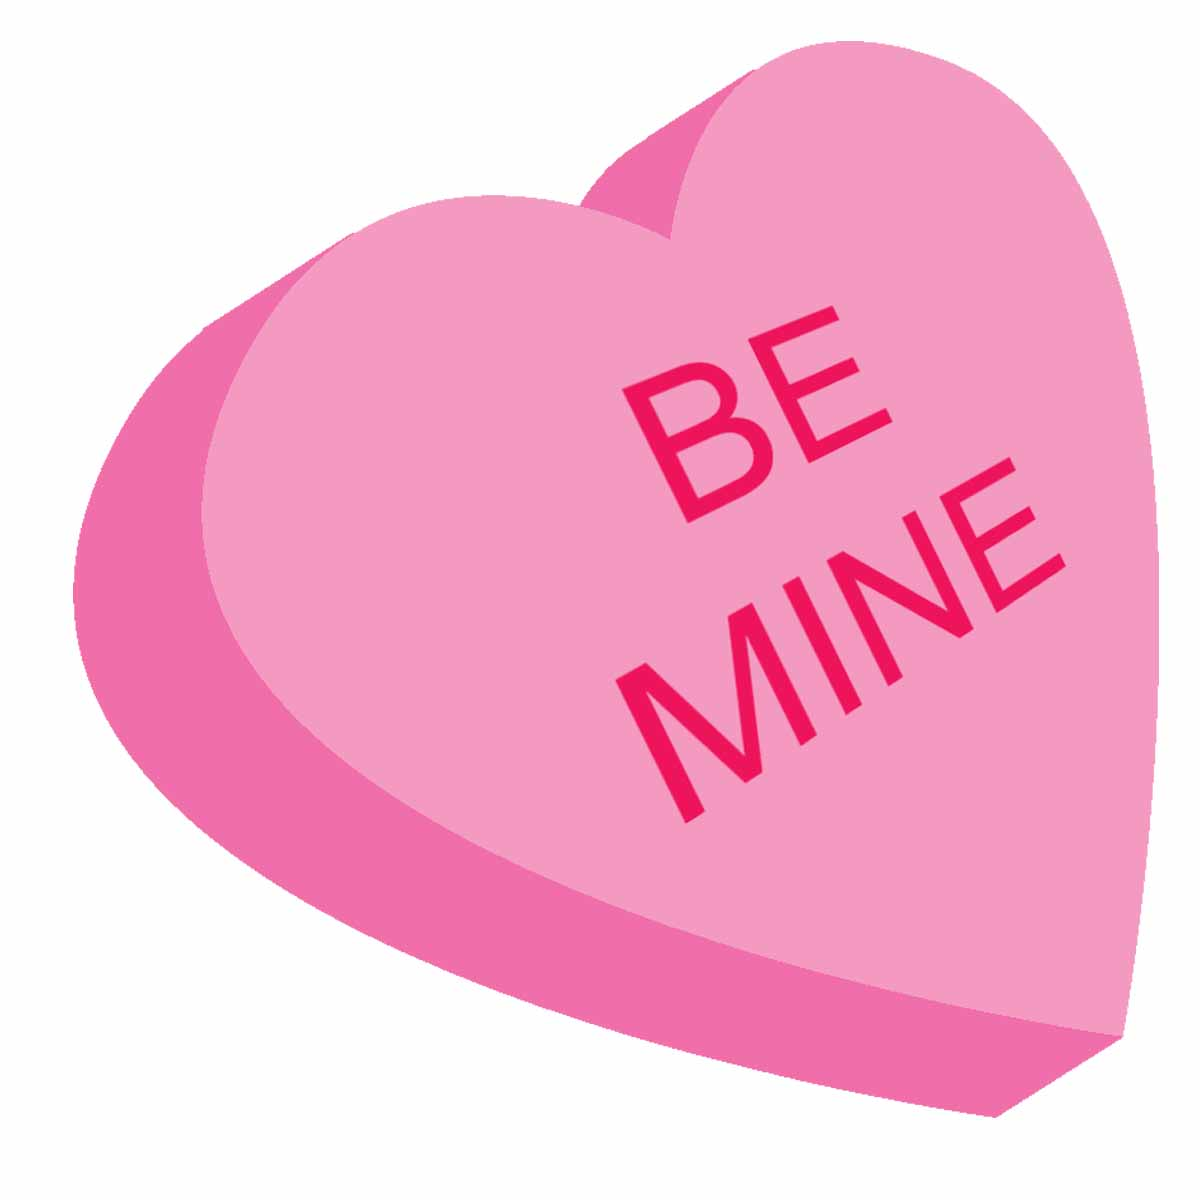 Romantic Valentine Candy Hearts Clipart Funny Pictures Shake The